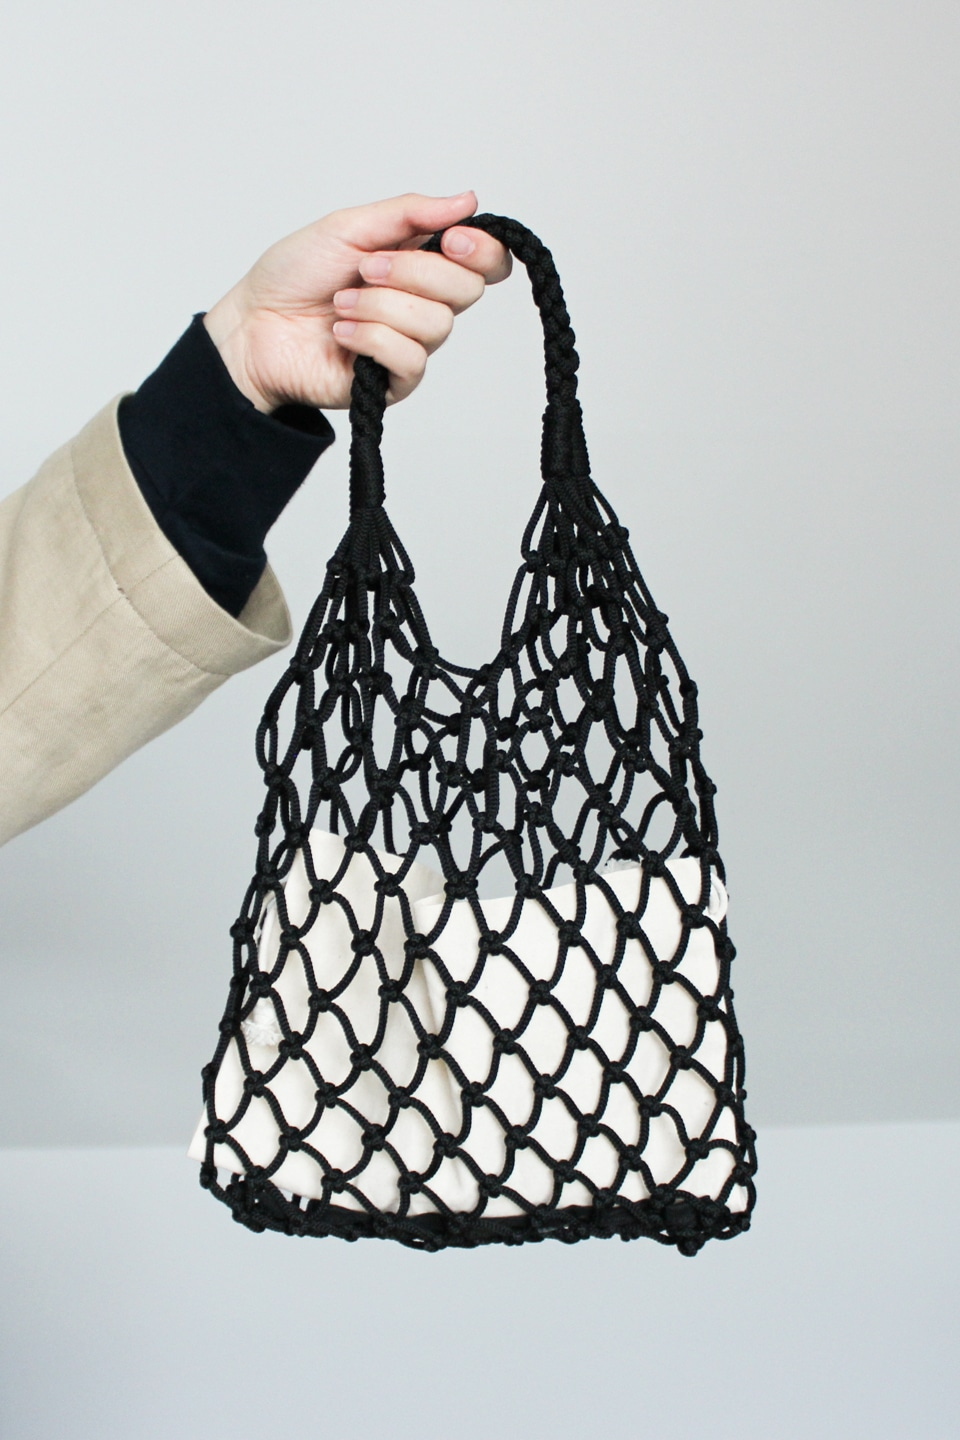 Hand holding up black knotted bag